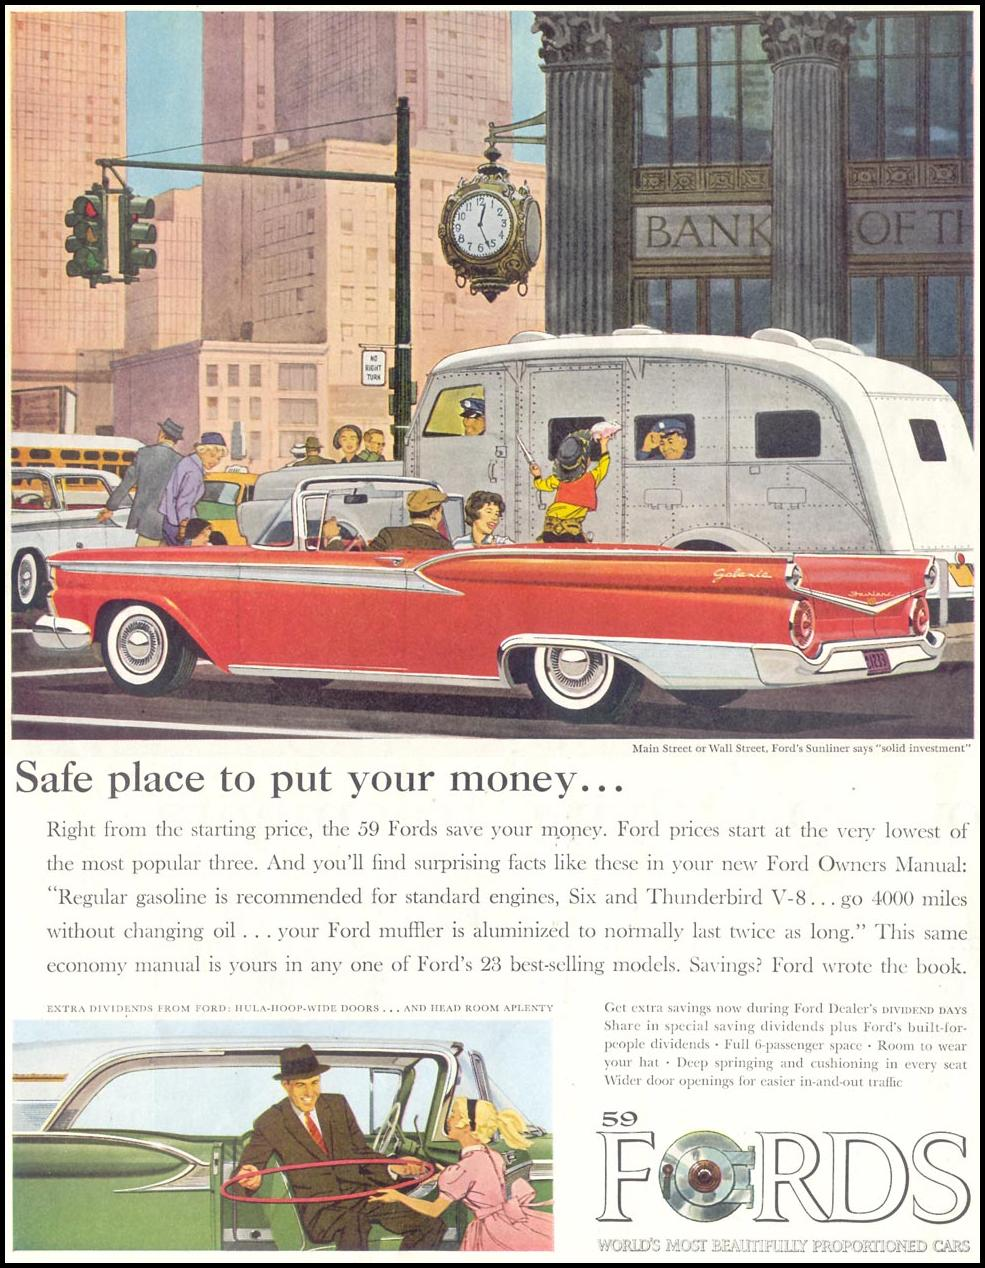 FORD AUTOMOBILES SATURDAY EVENING POST 05/02/1959